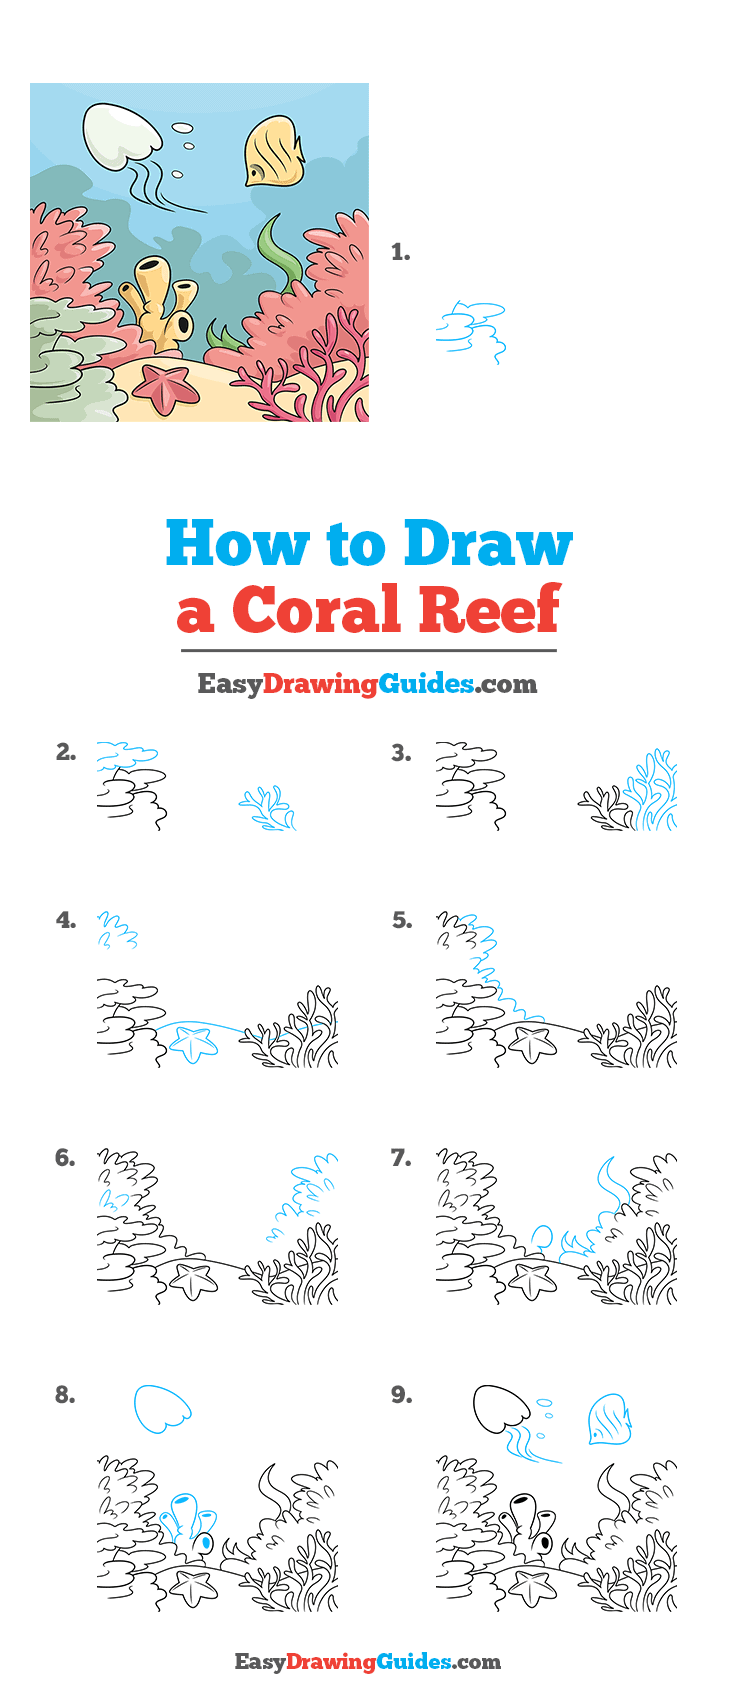 How to Draw a Coral Reef Step by Step Tutorial Image